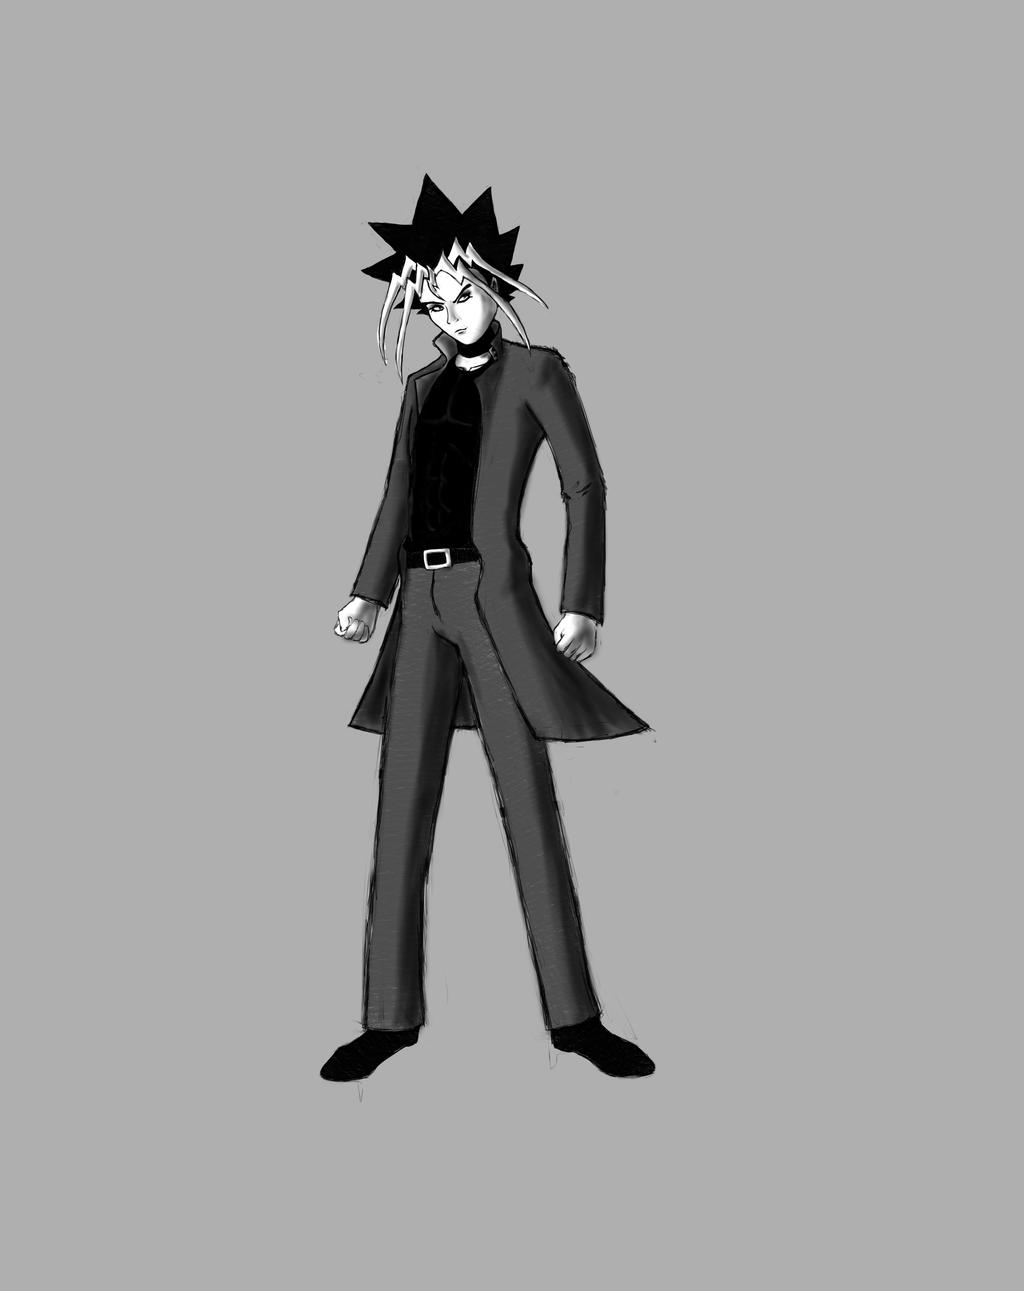 Yugioh Character Design : Motou yugi yu gi oh s character design by mchaven on